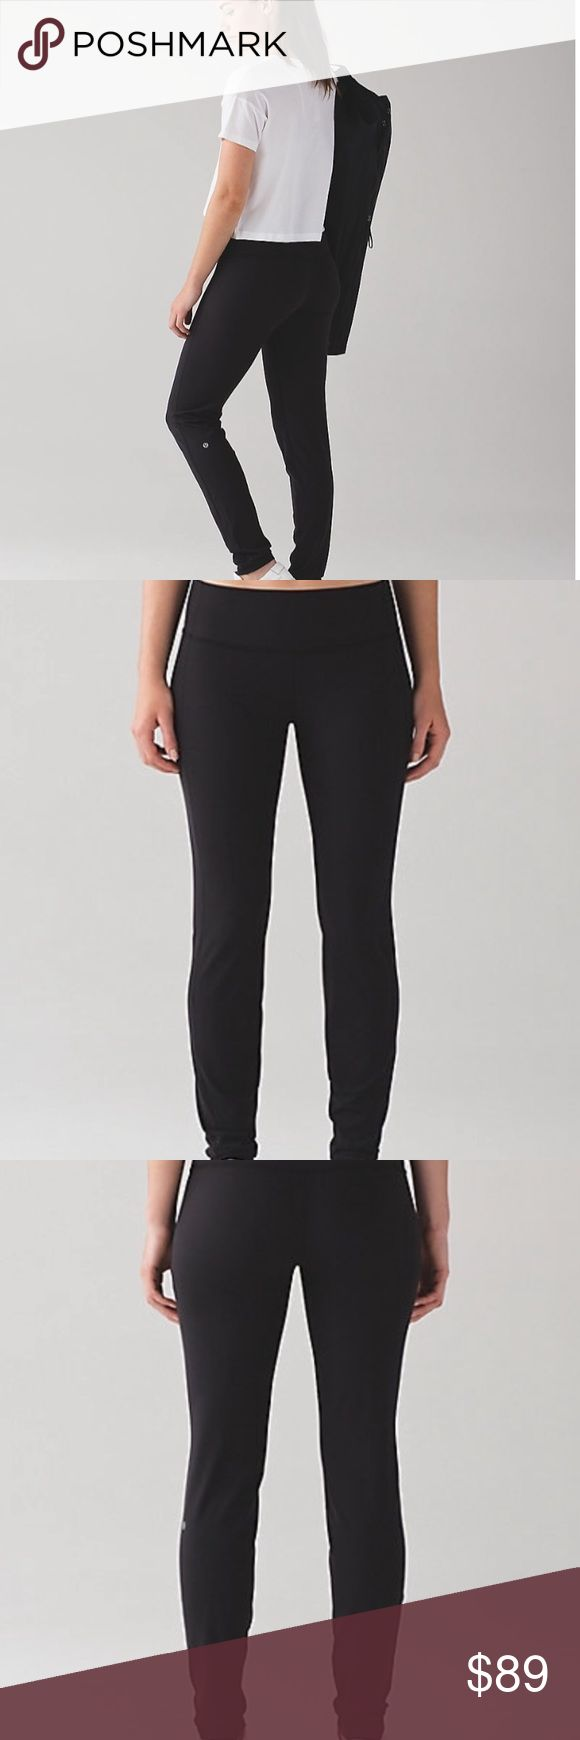 [•JUSTADDED•] LULULEMON Simply Bare Un-Tight Tight BRAND NEW. LULULEMON Naked Simply Bare Un-Tight Tight. NAKED line. Size: 4. Color: black. Love the naked pants line - feels like butter! Offers accepted! lululemon athletica Pants Leggings